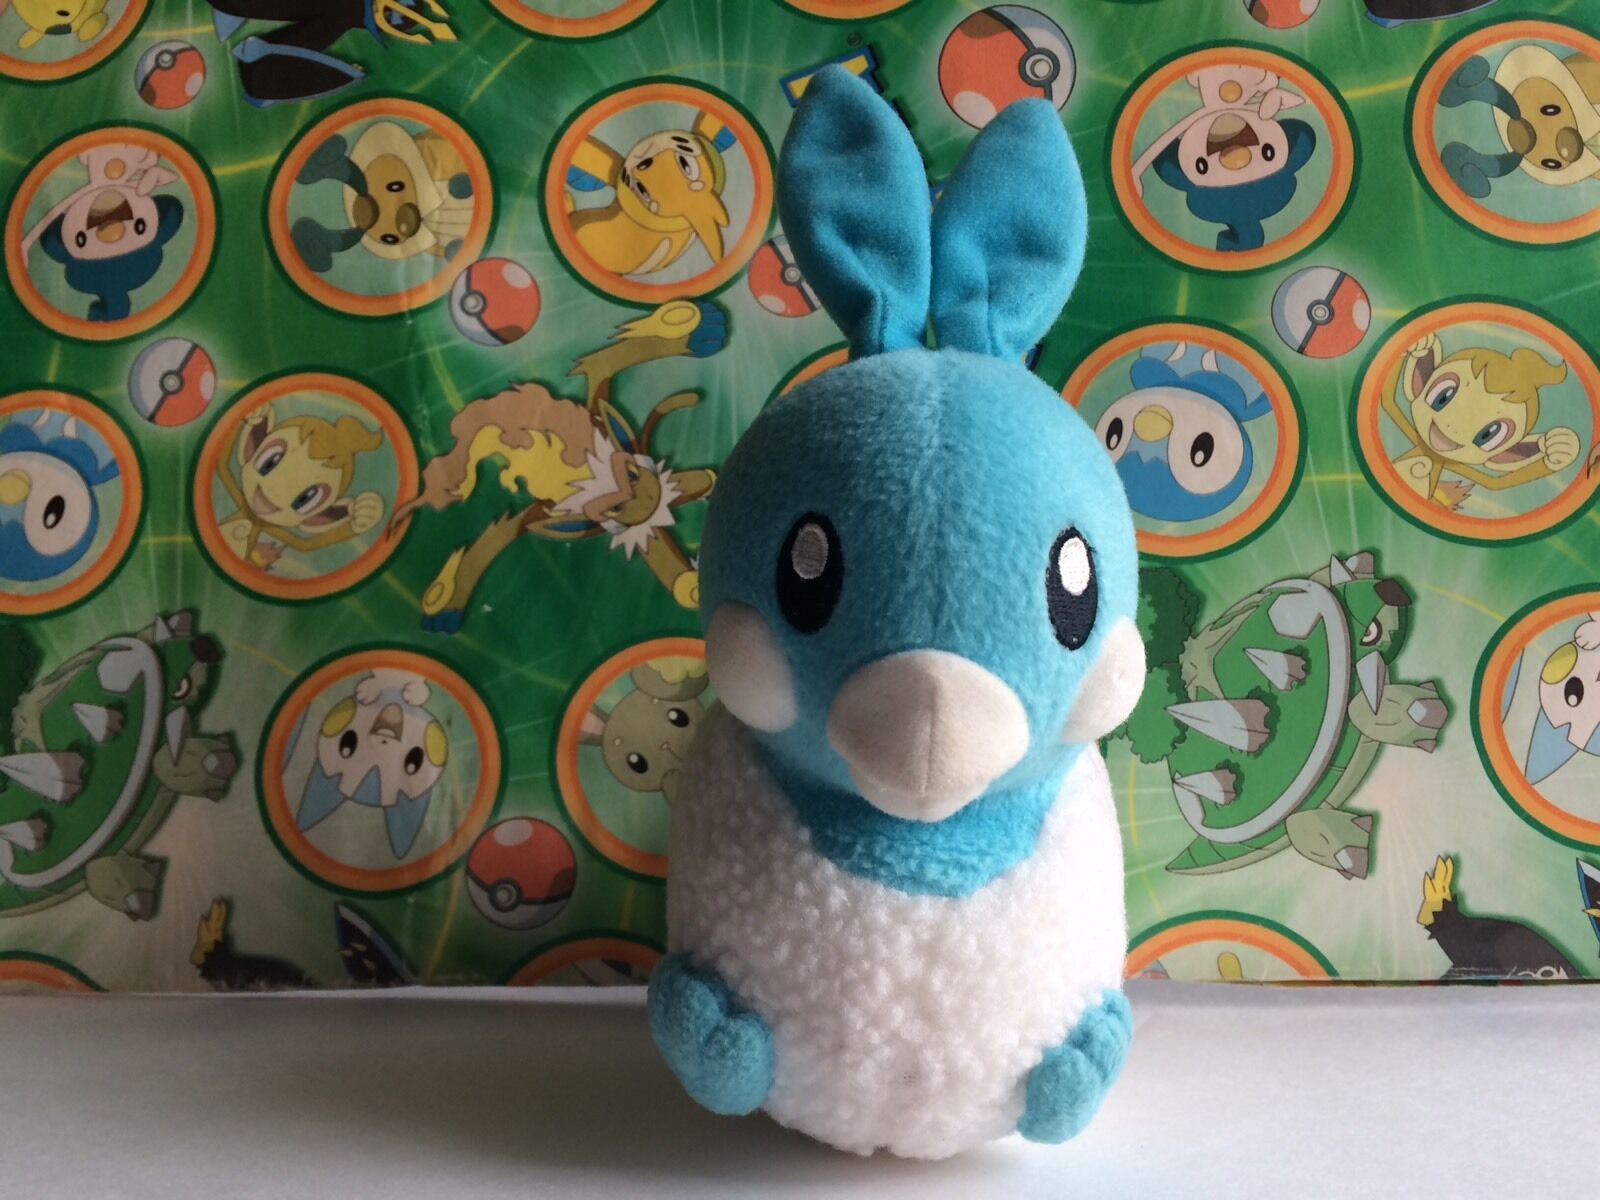 Pokemon Plush Altaria 2004 2004 2004 Banpresto Japan UFO Legit Poke doll stuffed figure 80c517